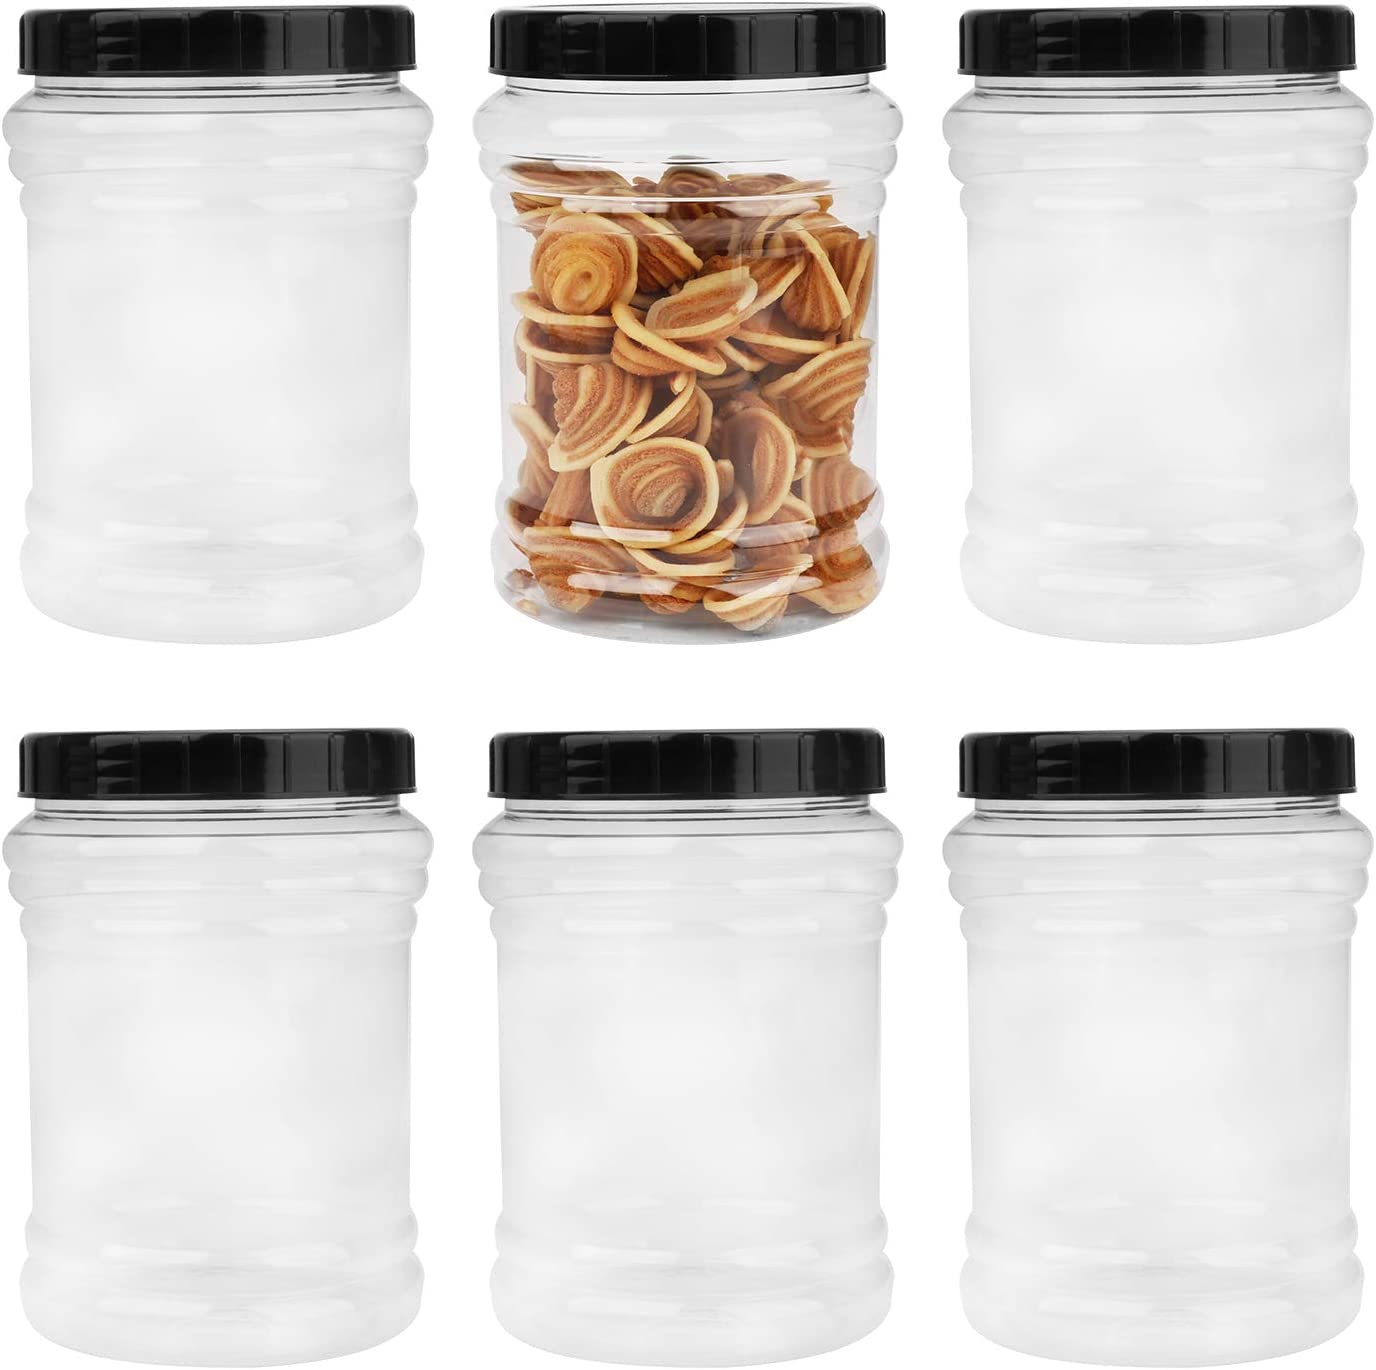 70oz / 2L Durable Plastic Jars, Accguan Clear Container for Food Storage, Airtight Plastic Jars Ideal For Dry Food, Dog Food and Washing Powder Storage, 6 PACK